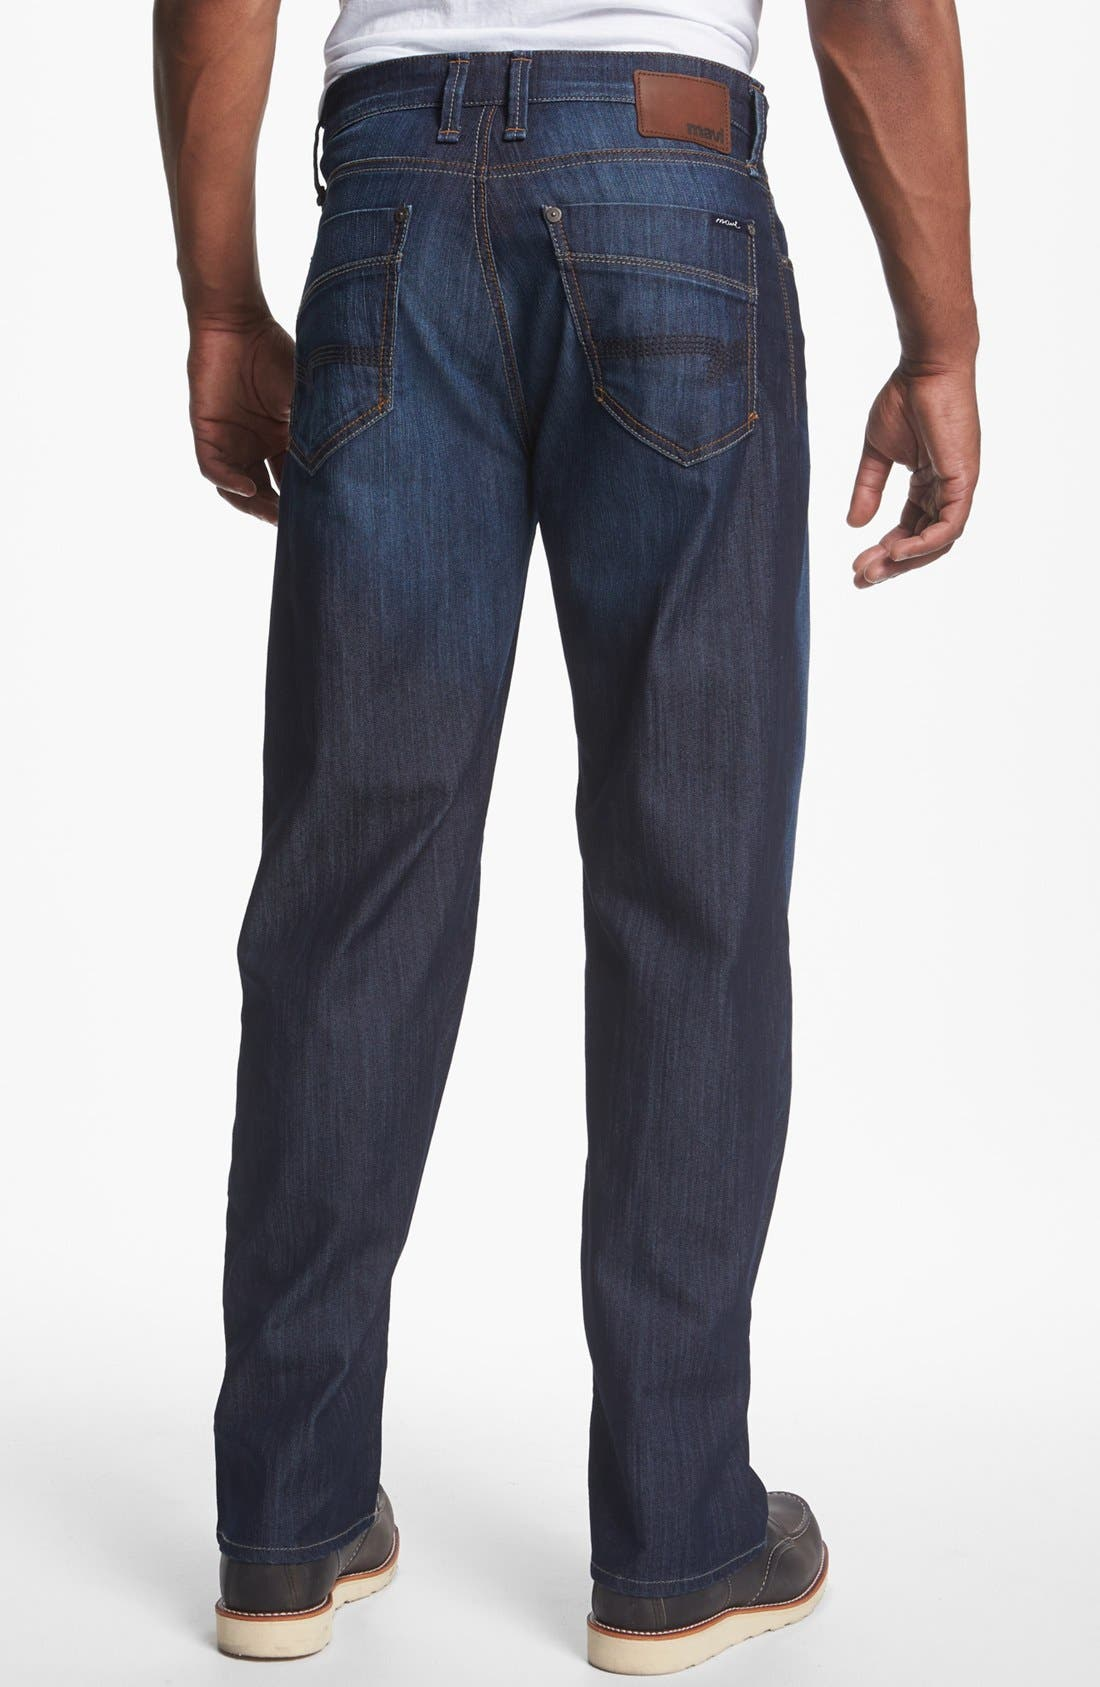 Alternate Image 1 Selected - Mavi Jeans 'Max' Relaxed Jeans (Rinse Arizona Comfort) (Online Only)